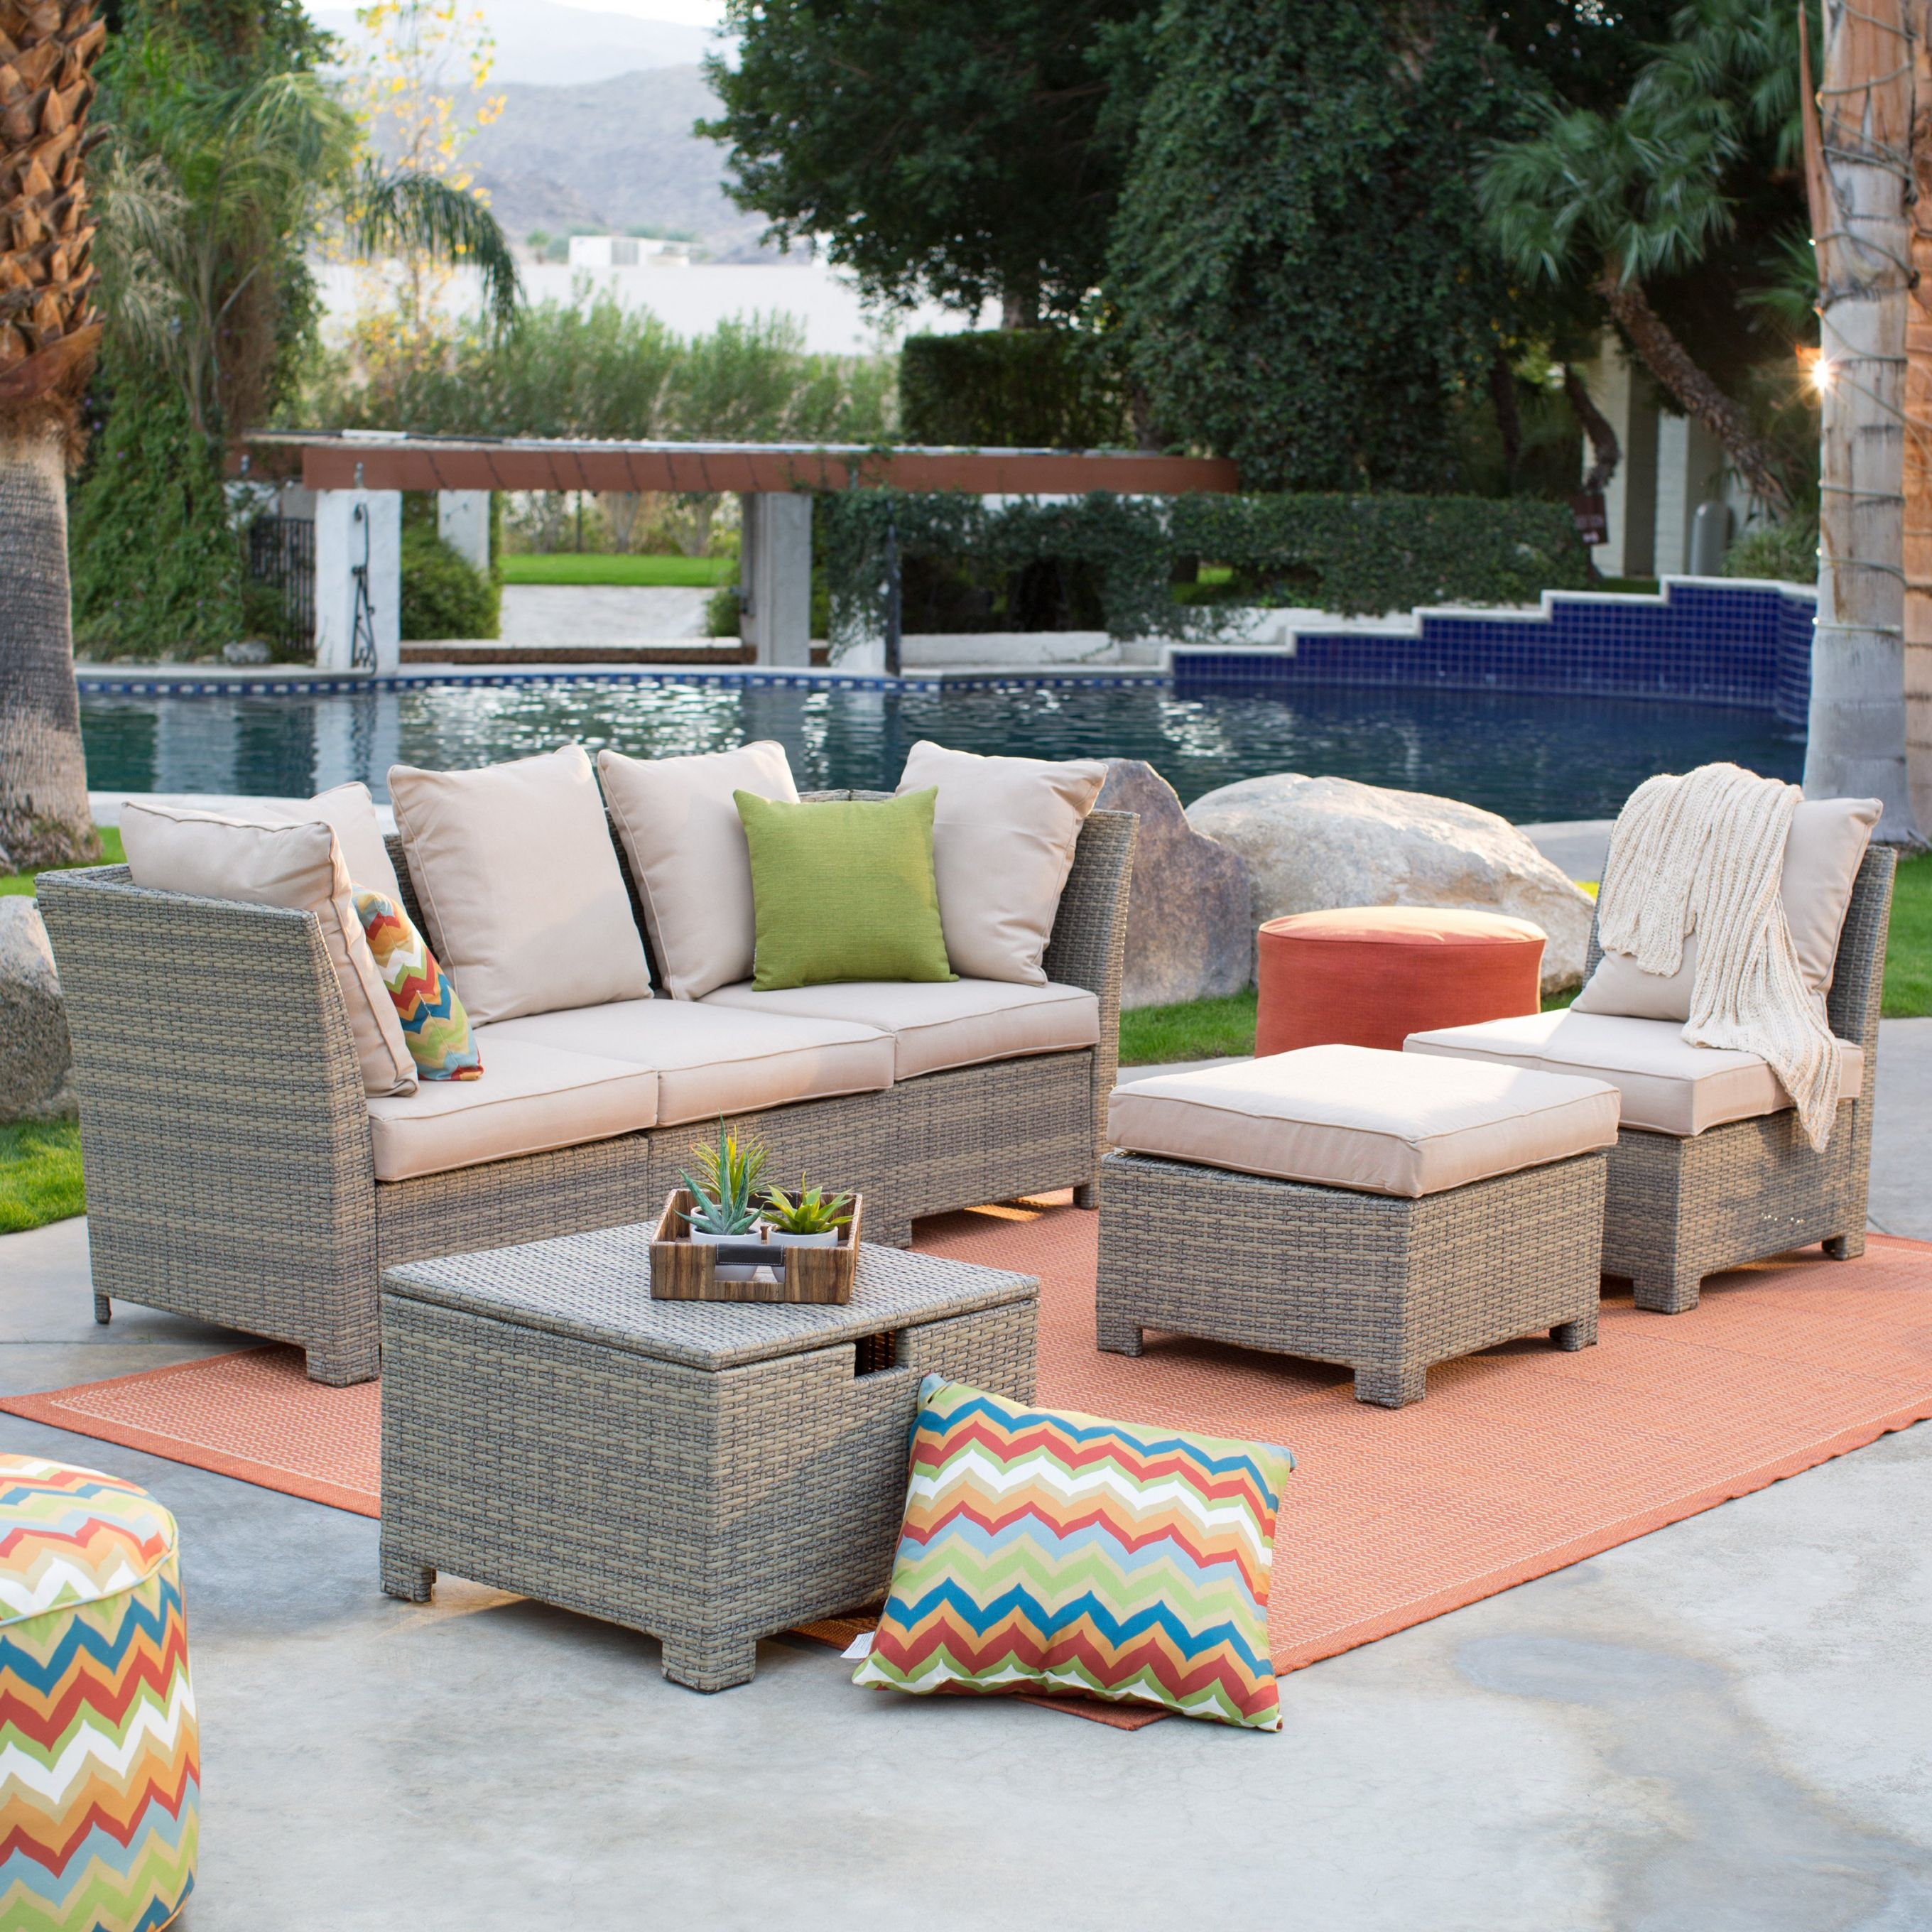 443781c3623a patio furniture collections miami - Yahoo Image Search Results ...